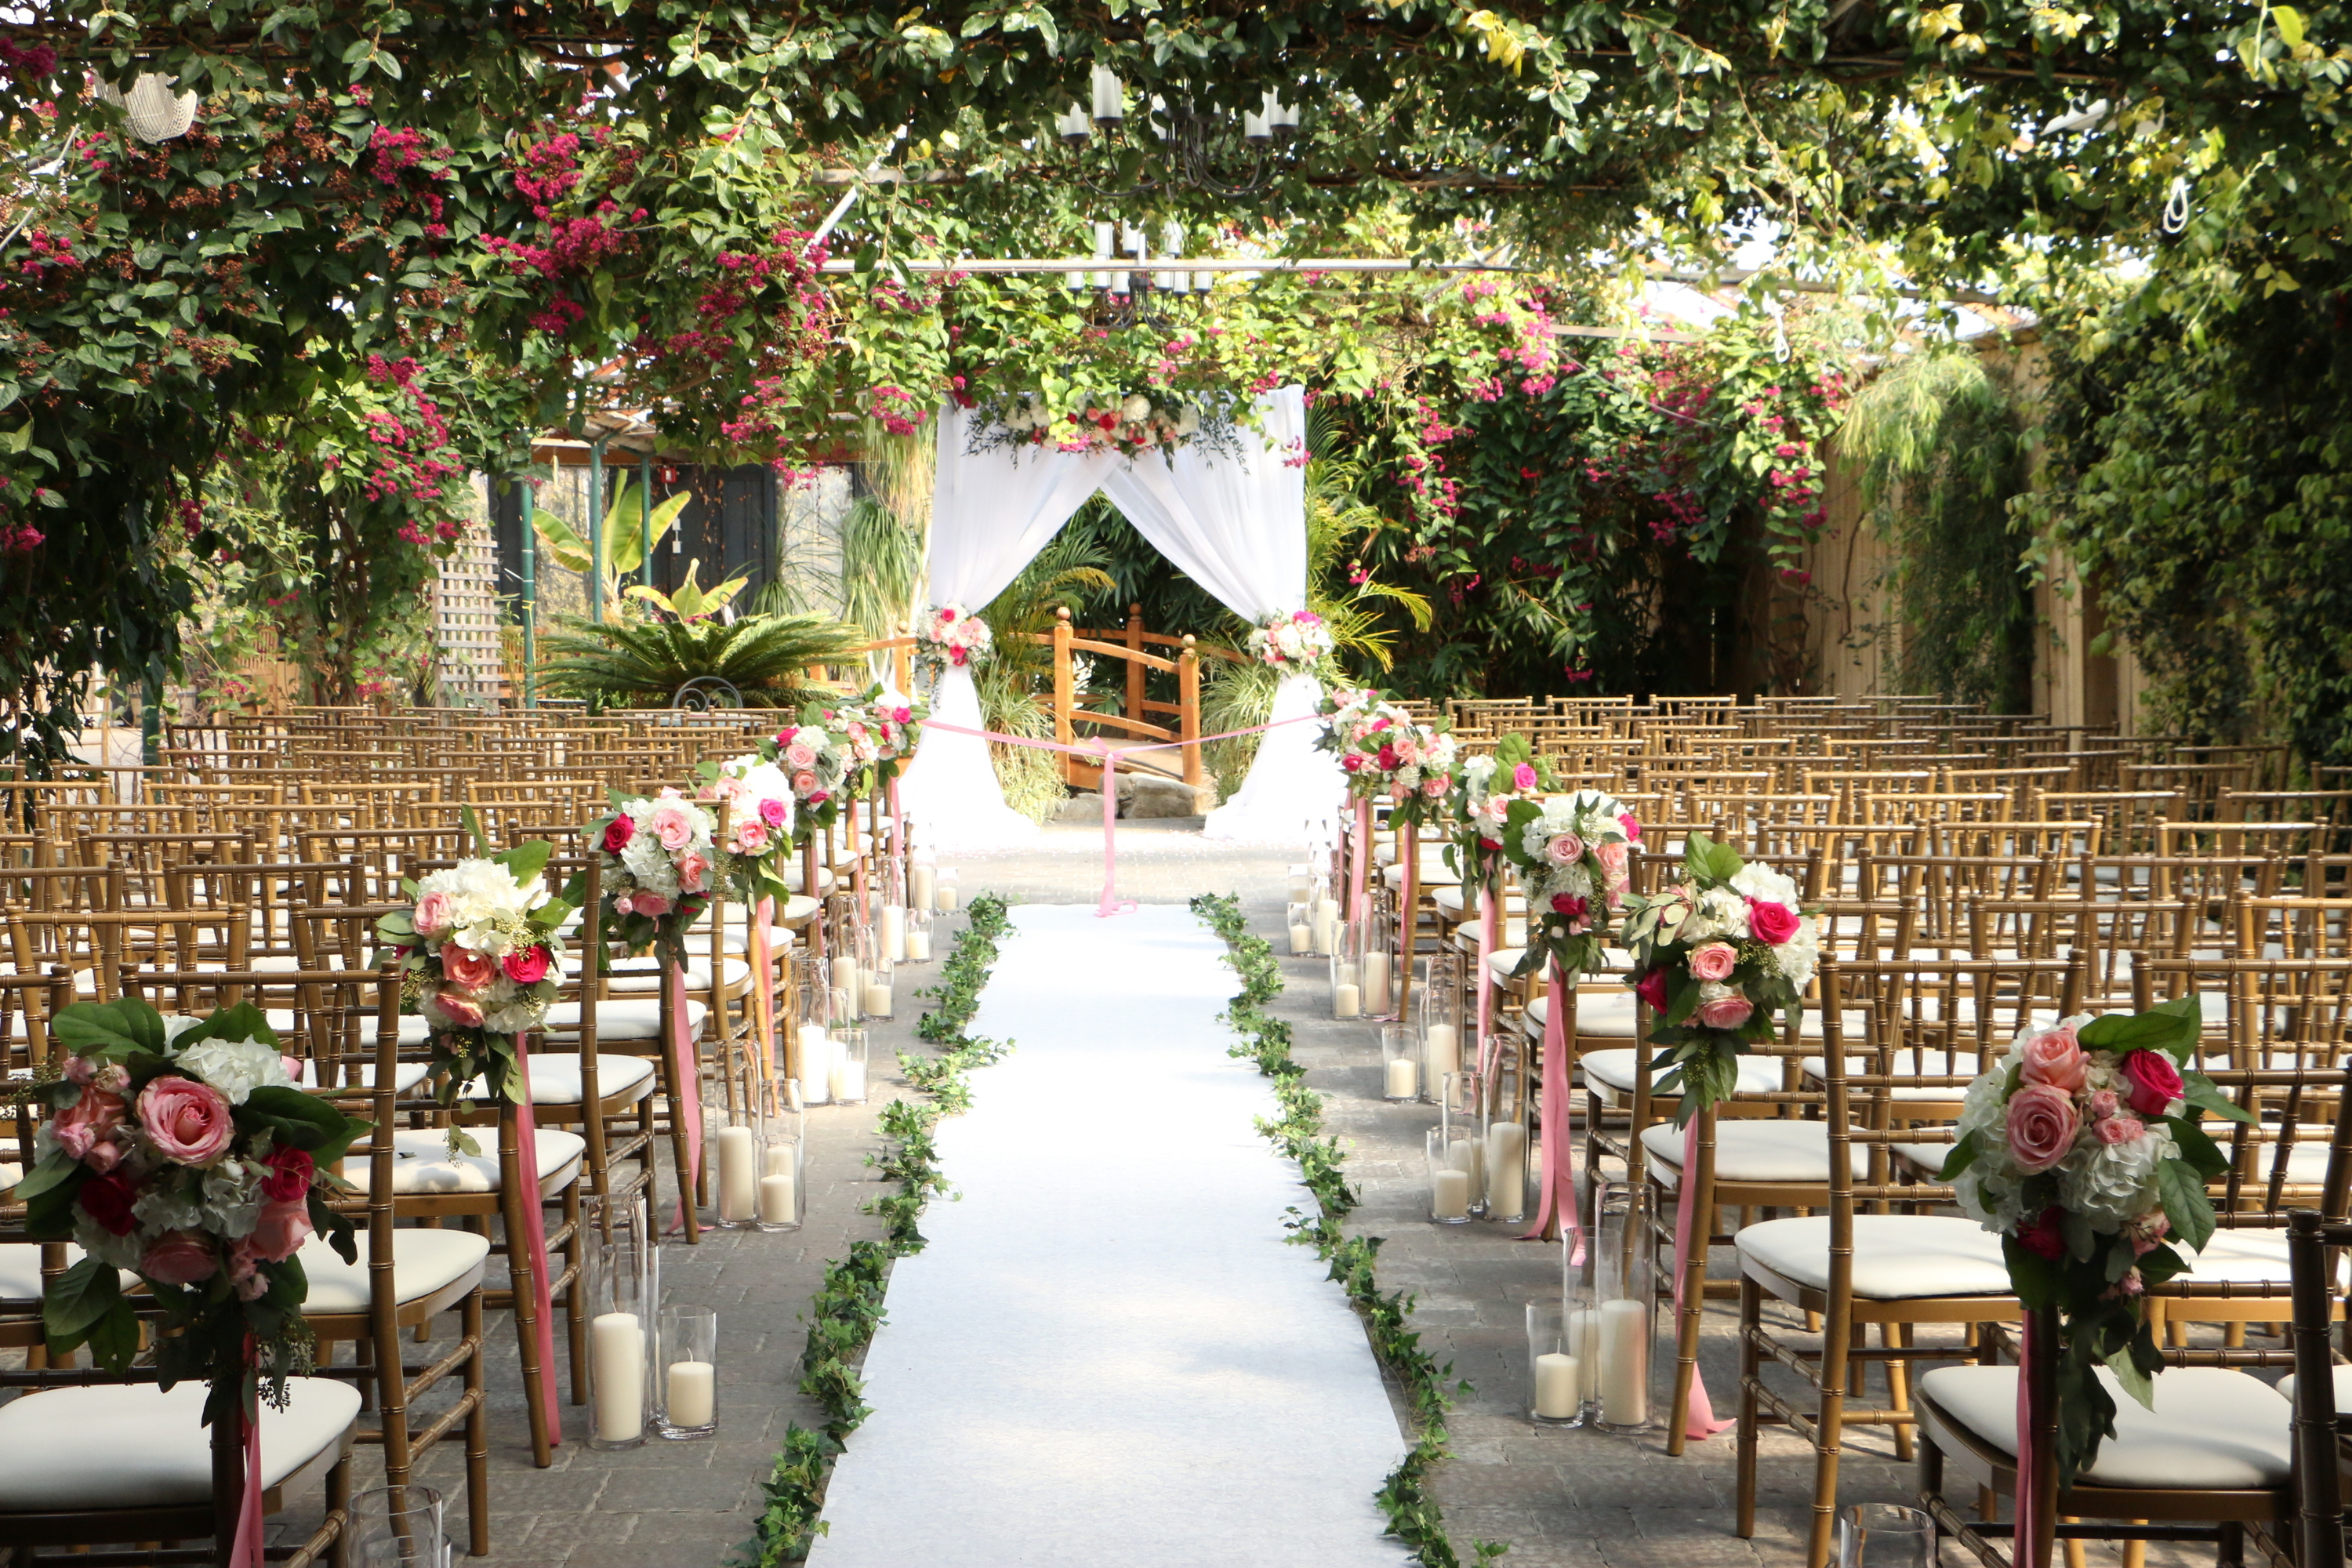 Picking your wedding venue is one of the most important parts of your wedding planning. Here are 5 things to consider when picking your wedding venue.